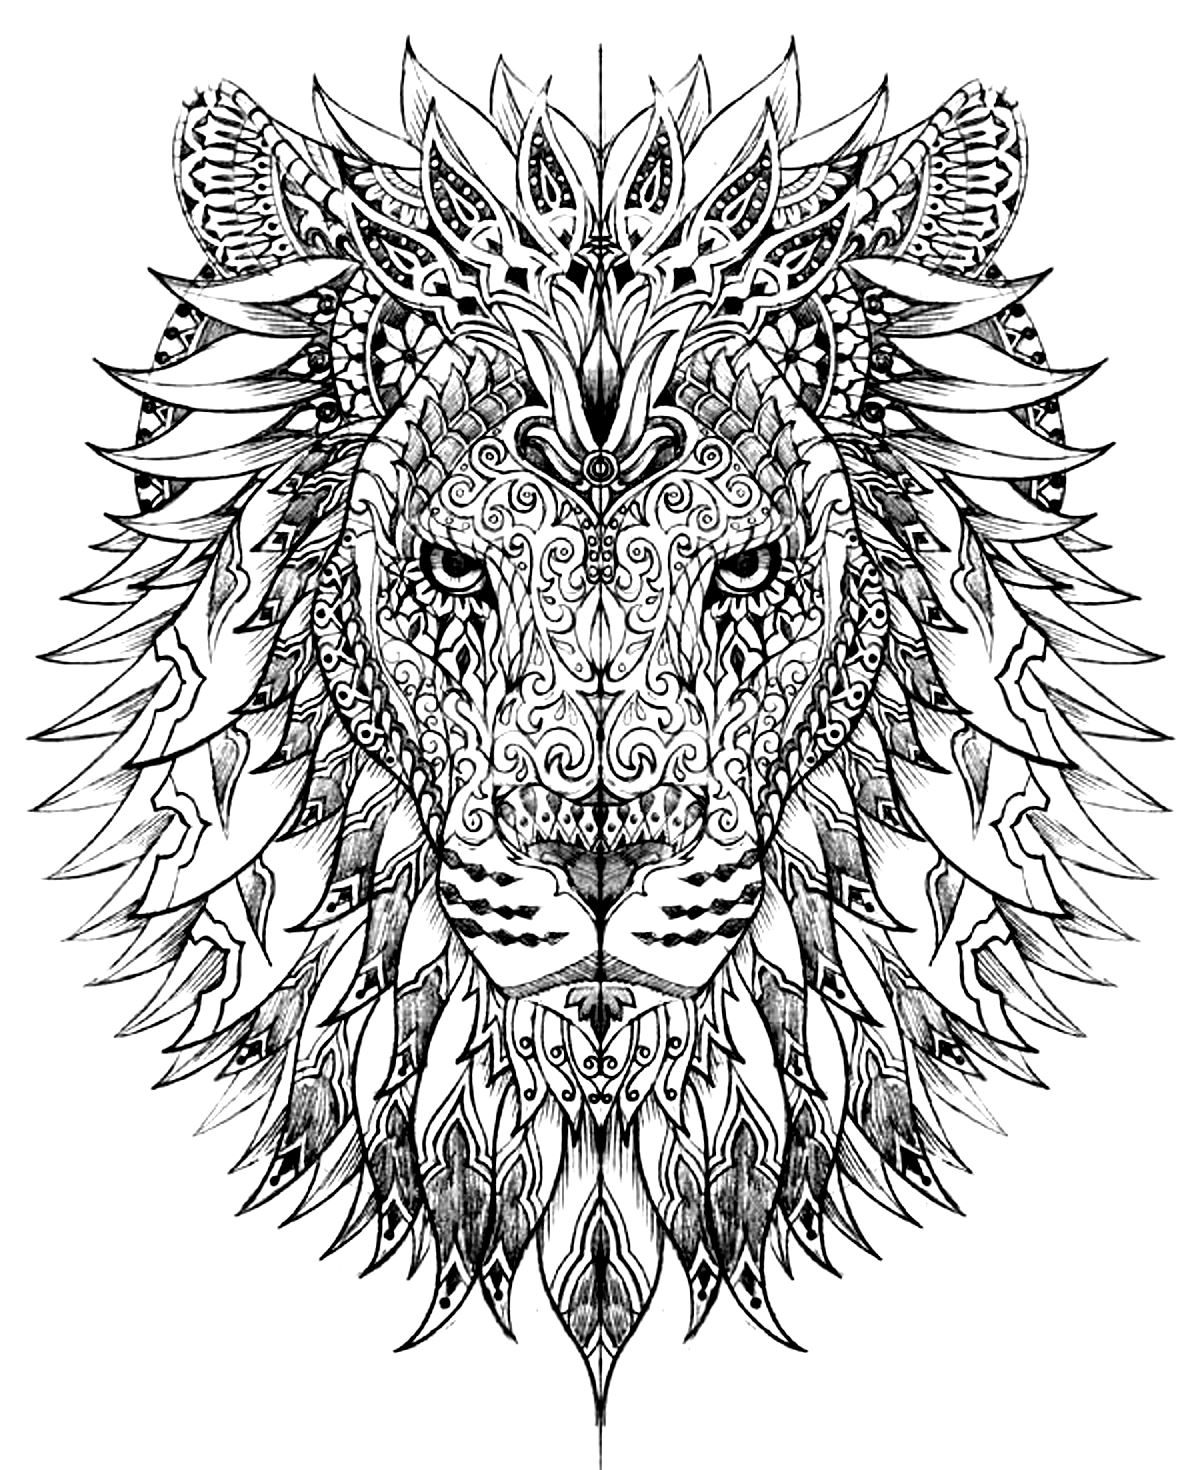 difficult coloring pages for teenagers coloring pages for teens coloringrocks teenagers pages for coloring difficult